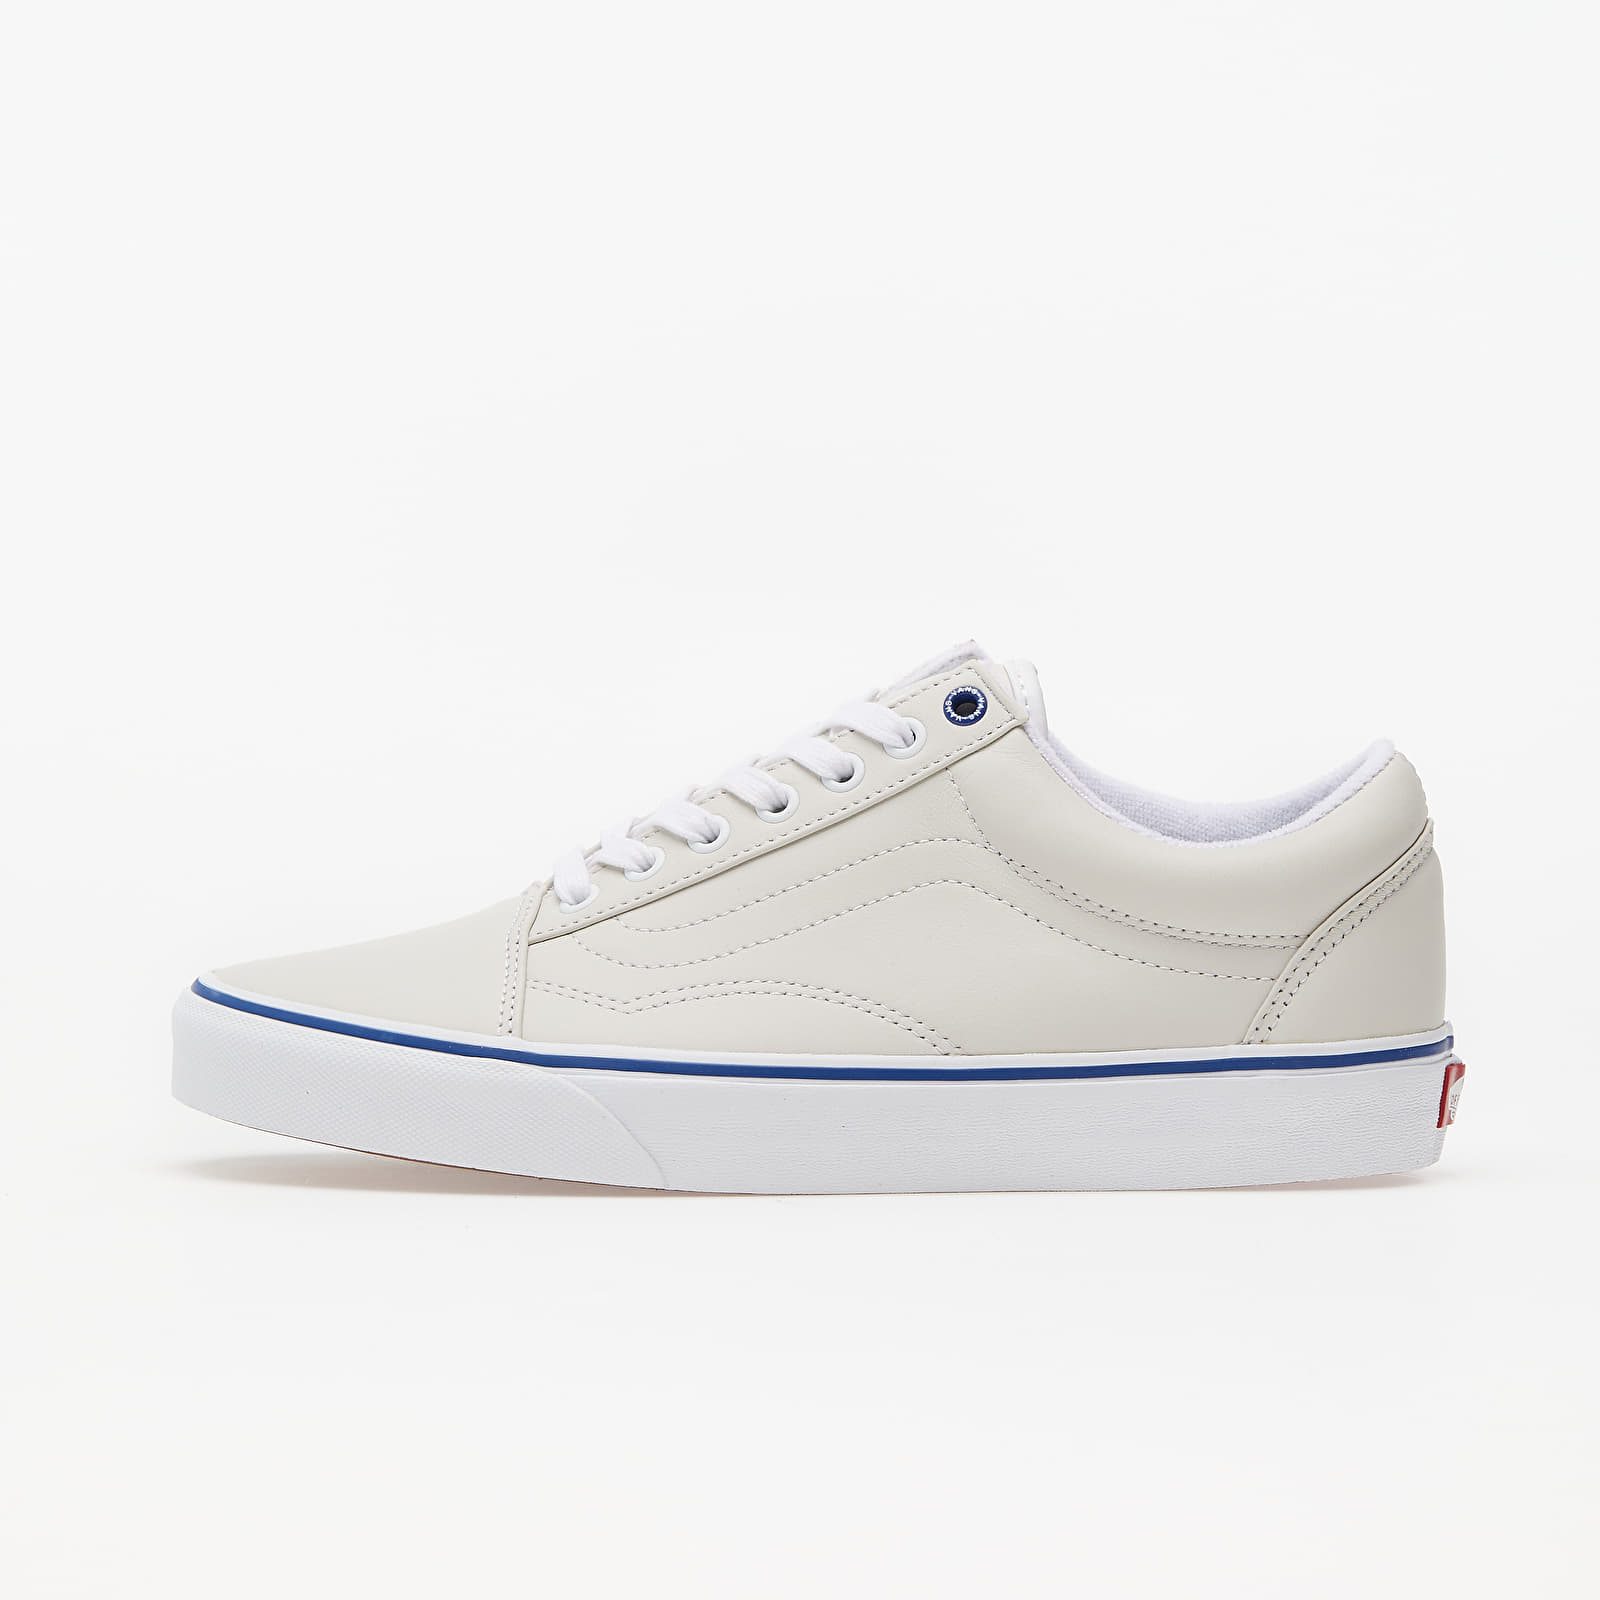 Vans Old Skool (Butter Leather) True White EUR 38